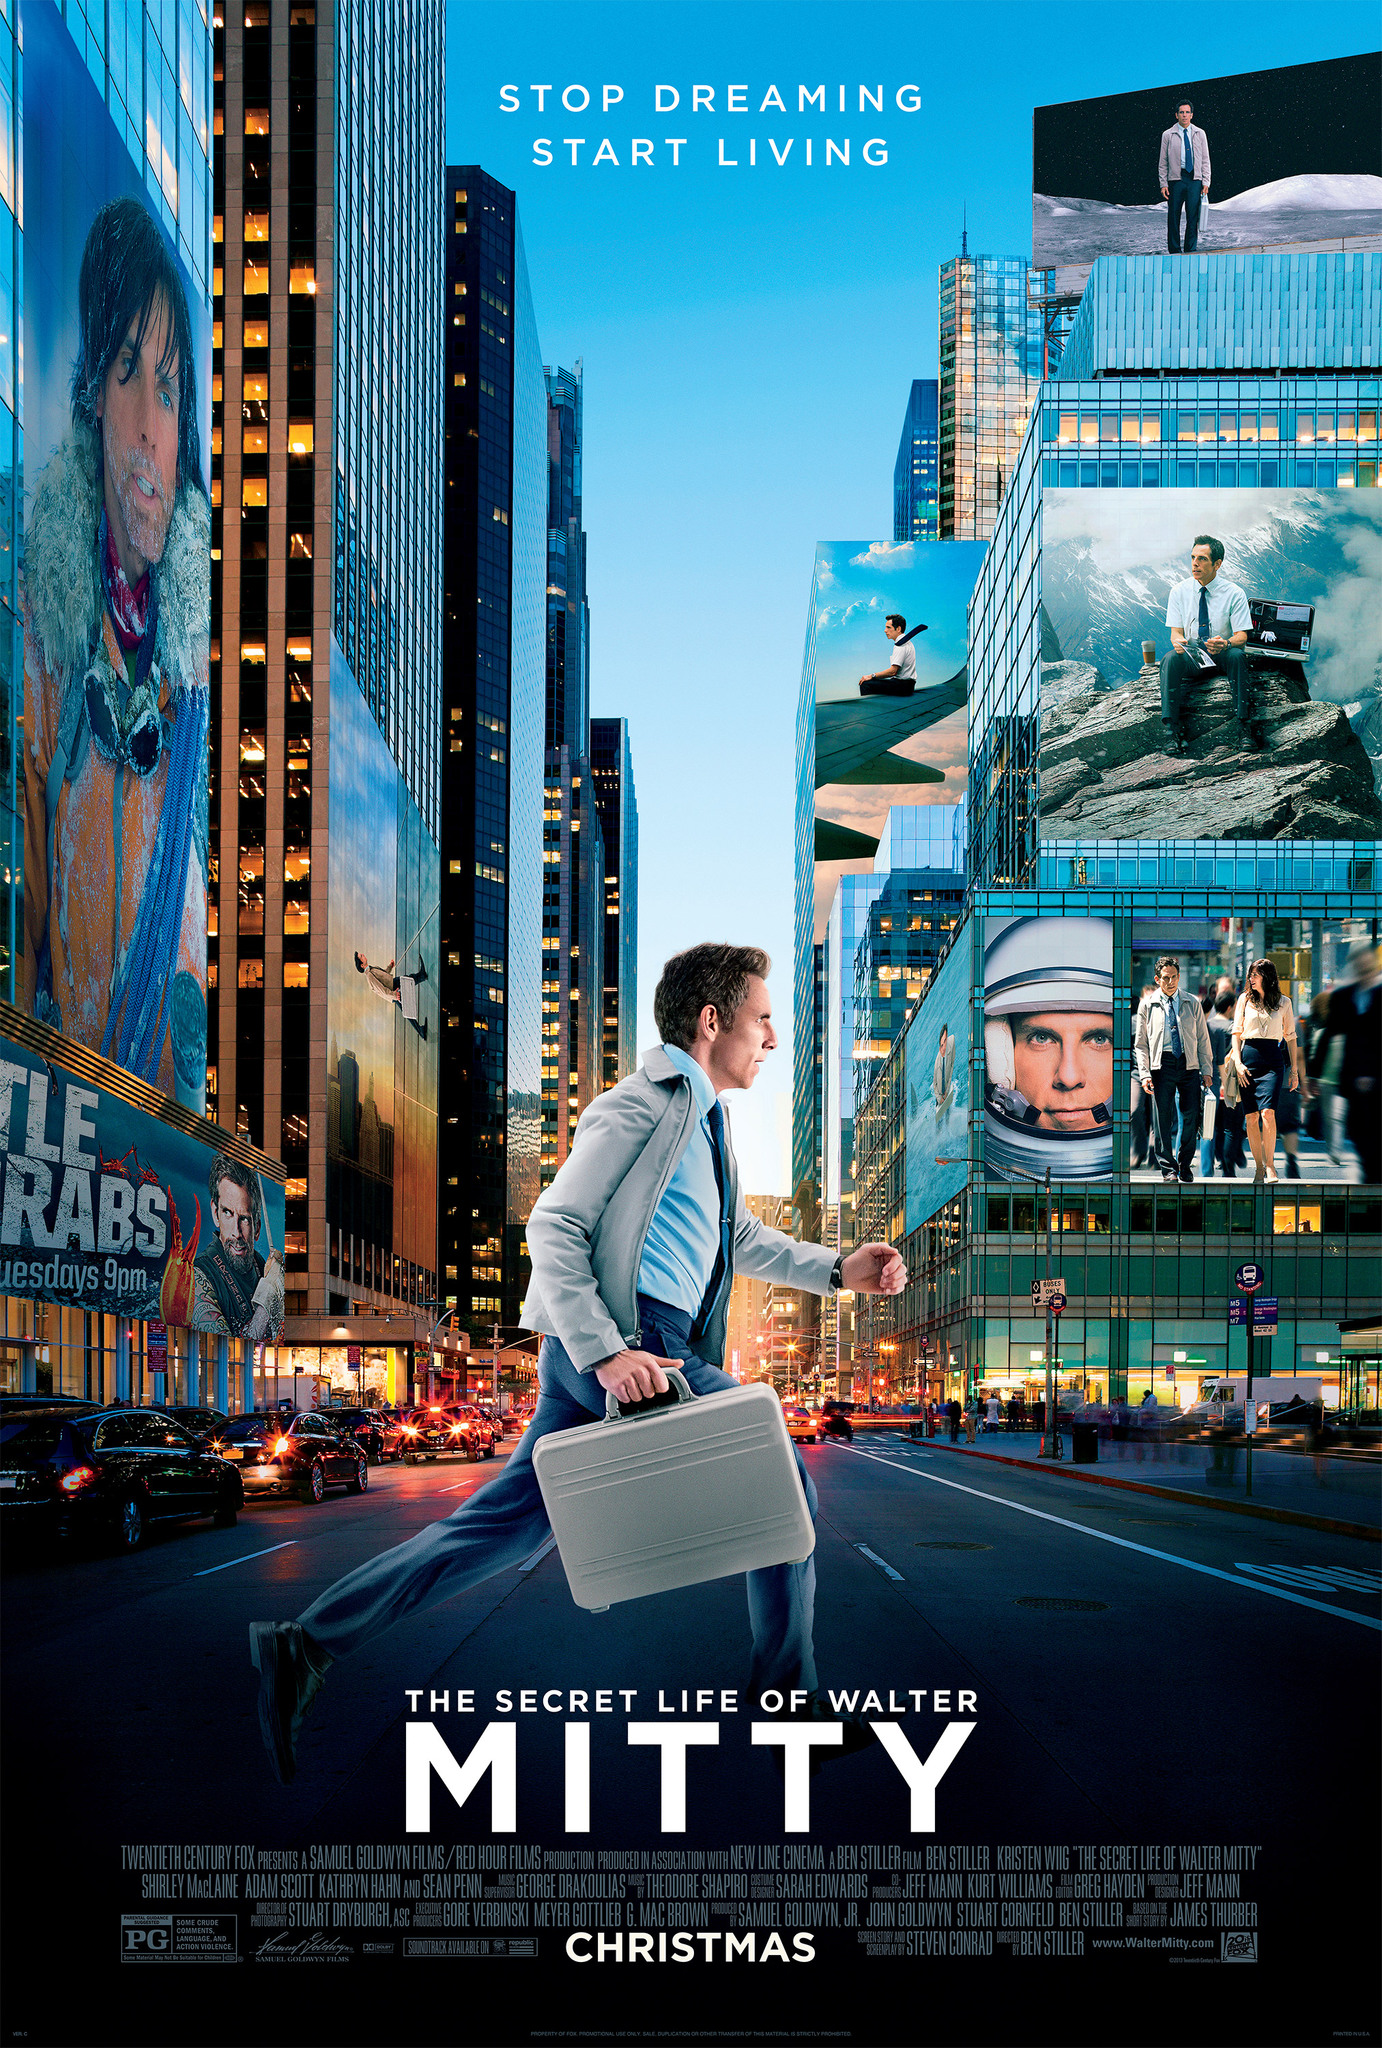 The secret life of walter mitty novel